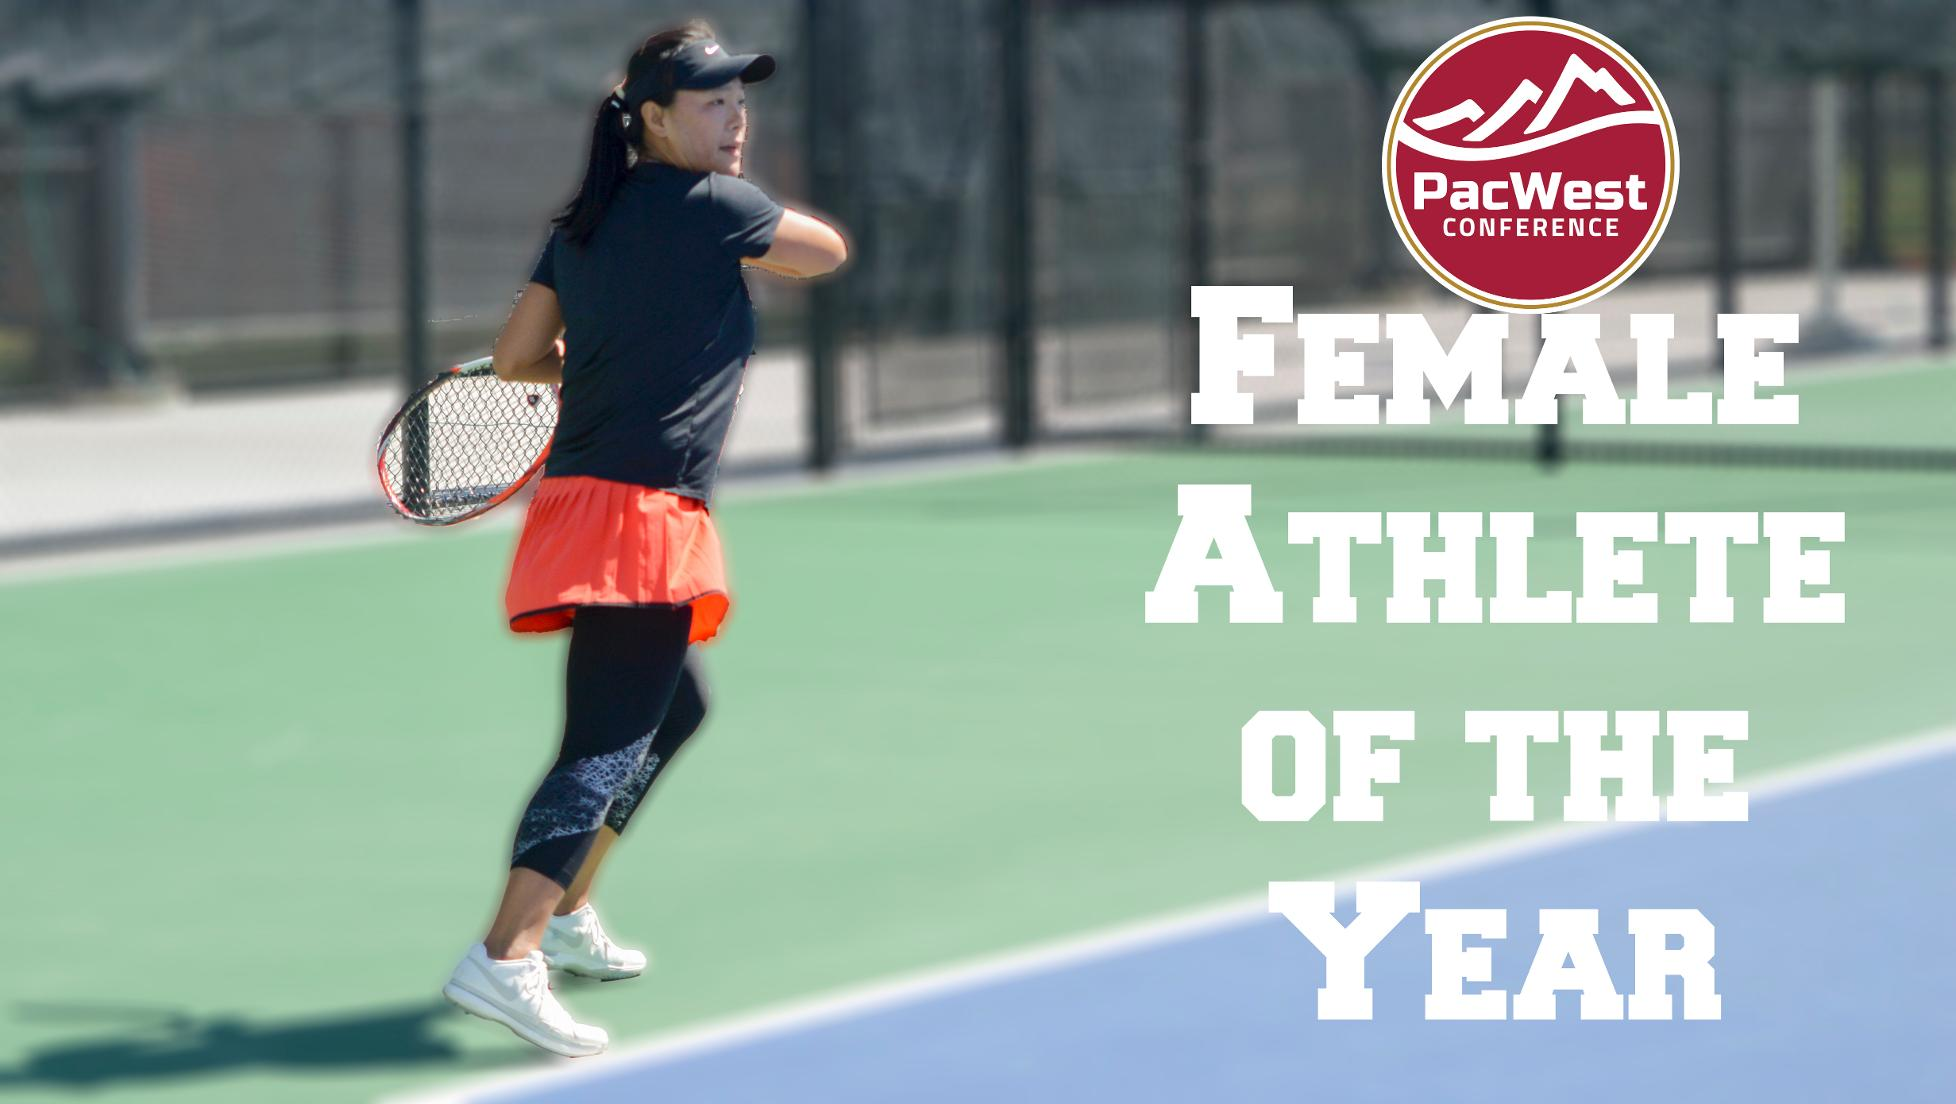 Zhang named PacWest Female Athlete of the Year